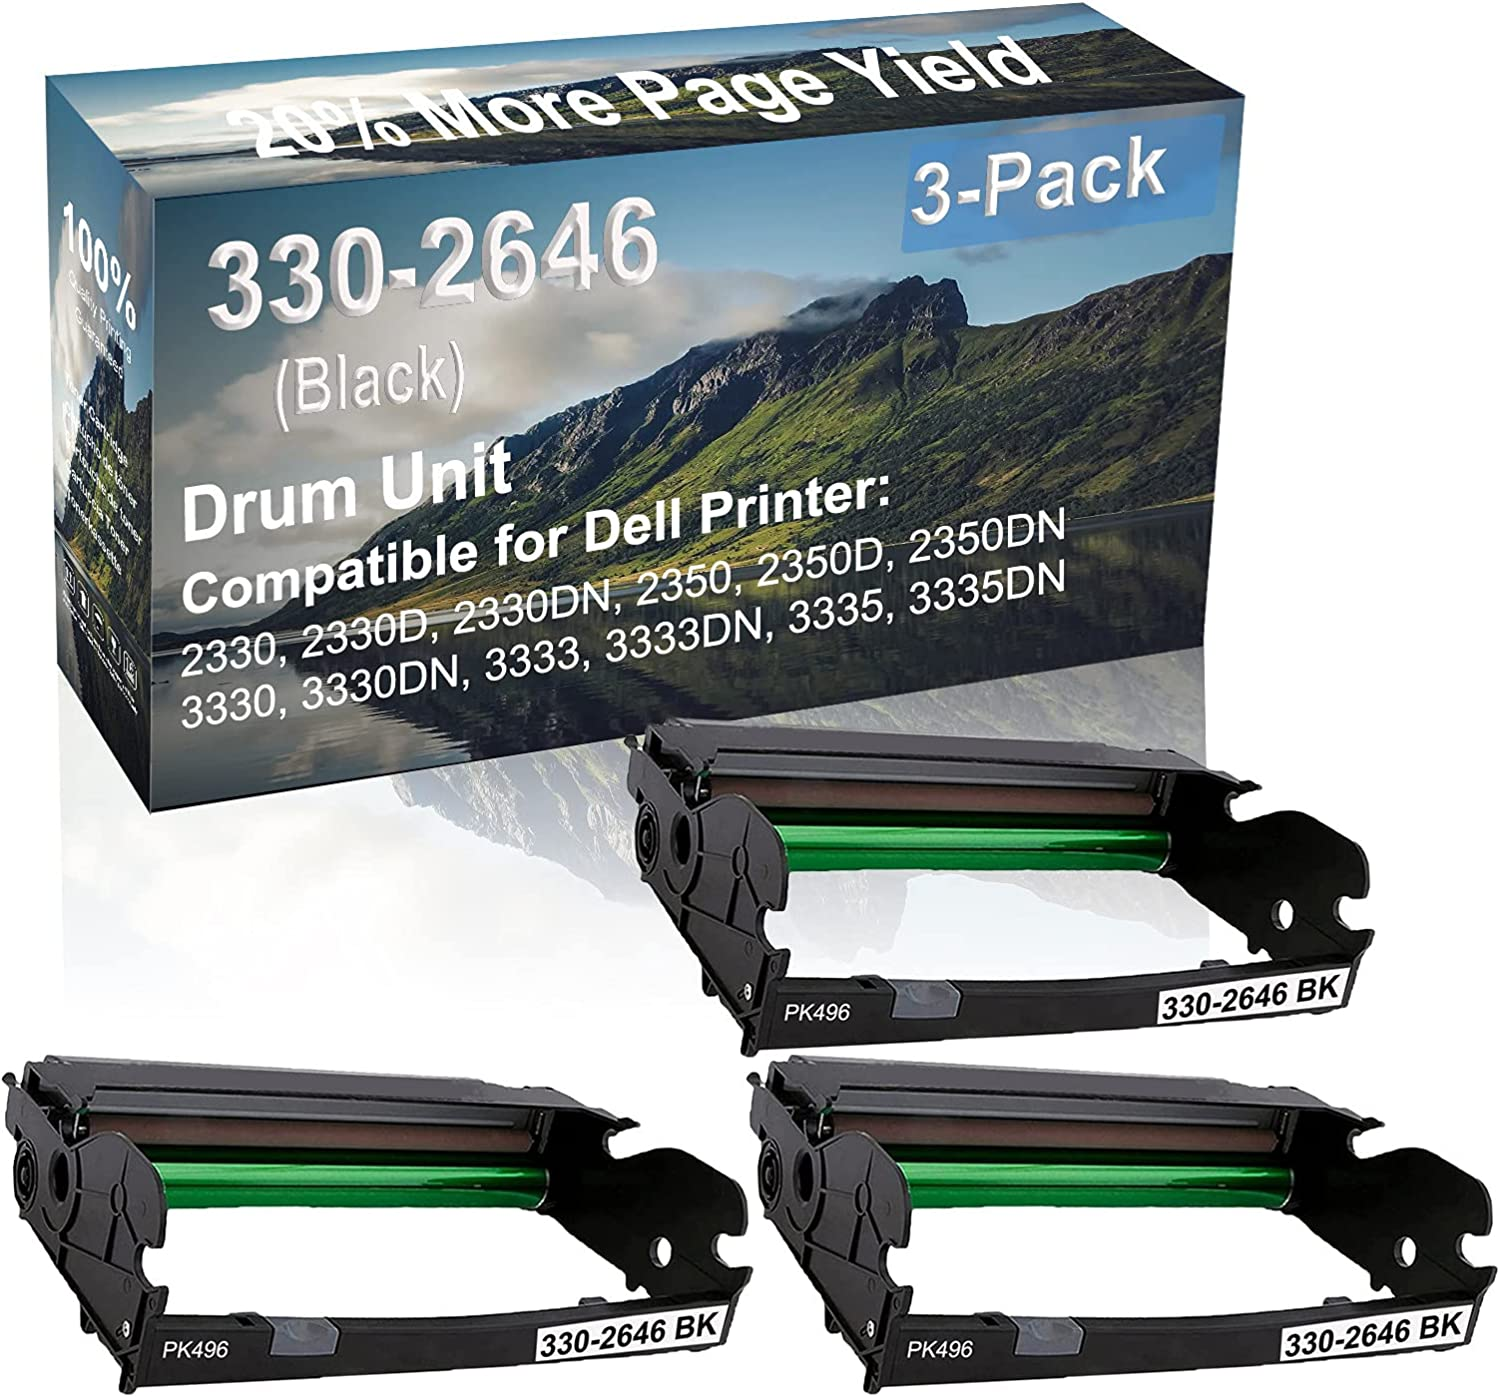 3-Pack Compatible Drum Unit (Black) Replacement for Dell 330-2646 Drum Kit use for Dell 3333, 3333DN, 3335, 3335DN Printer